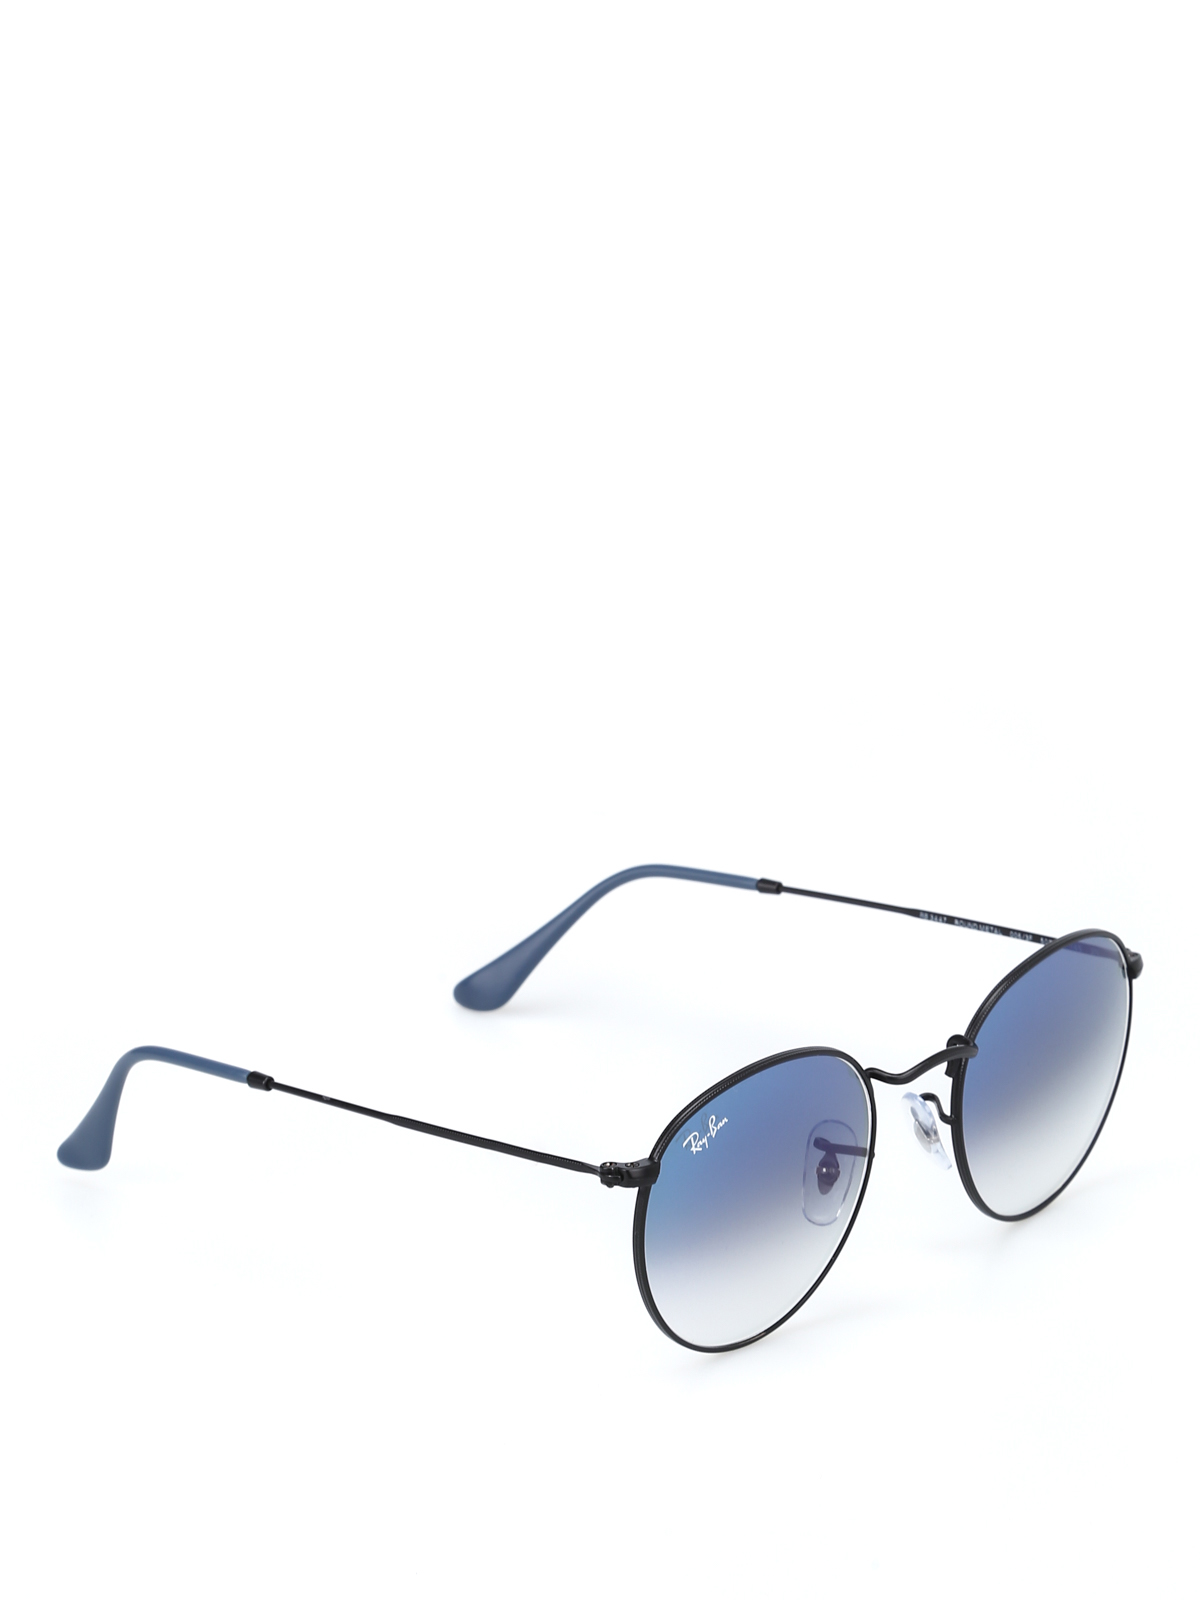 3a94f5410dc1 top quality buy ray ban sunglasses light blue lenses retro sunglasses 28bb0  4b133 cheap ccb44 9b4bc